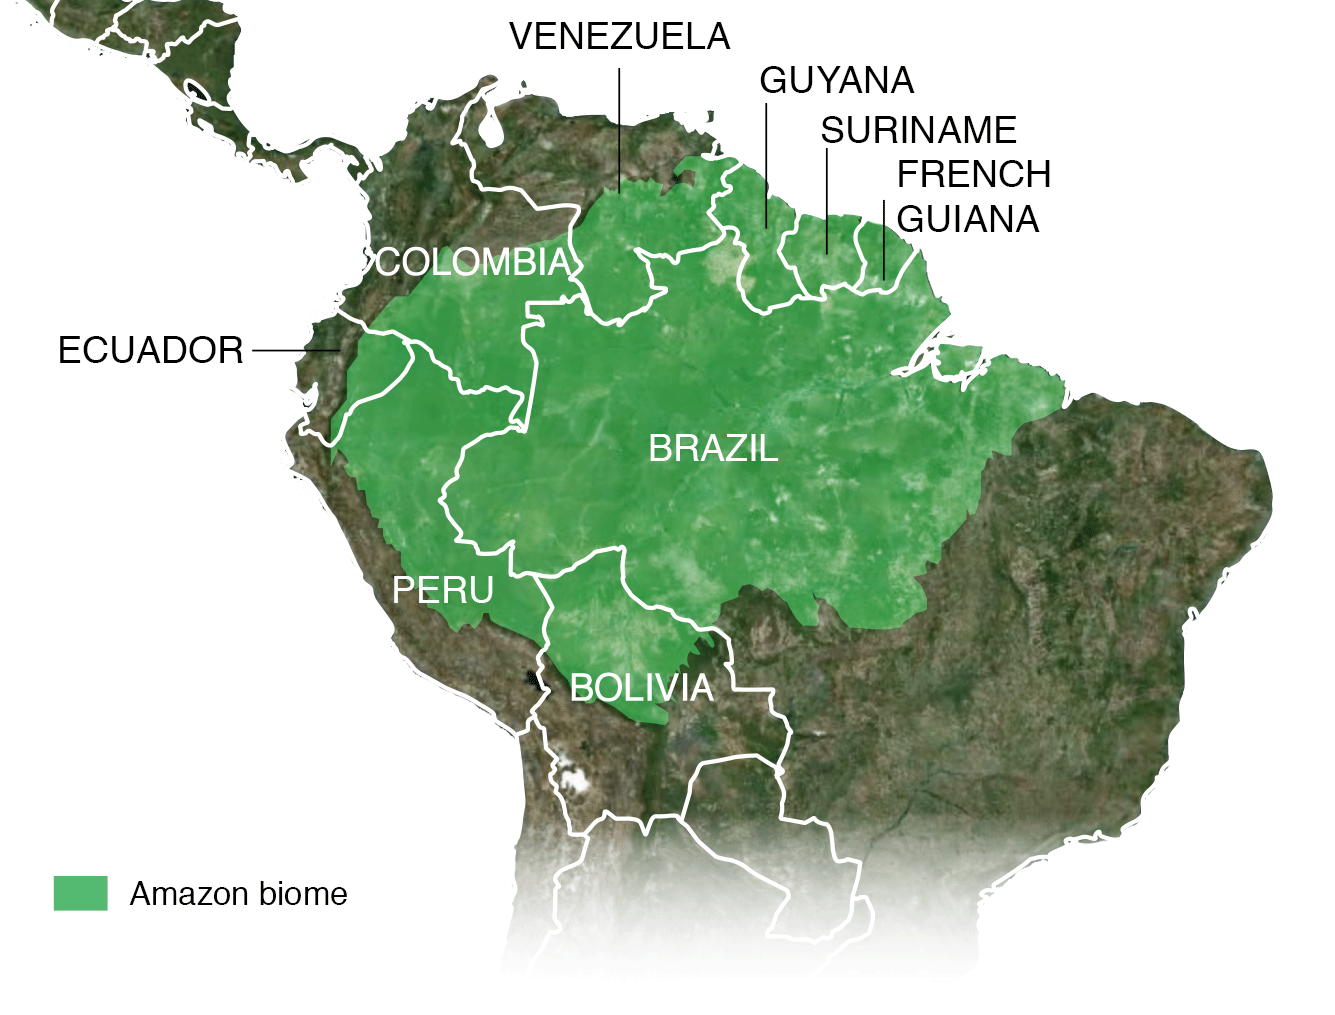 Map of Amazon biome including Peru, Bolivia, Ecuador, Colombia, Guyana, Suriname, French Guiana and Brazil and Venezuela